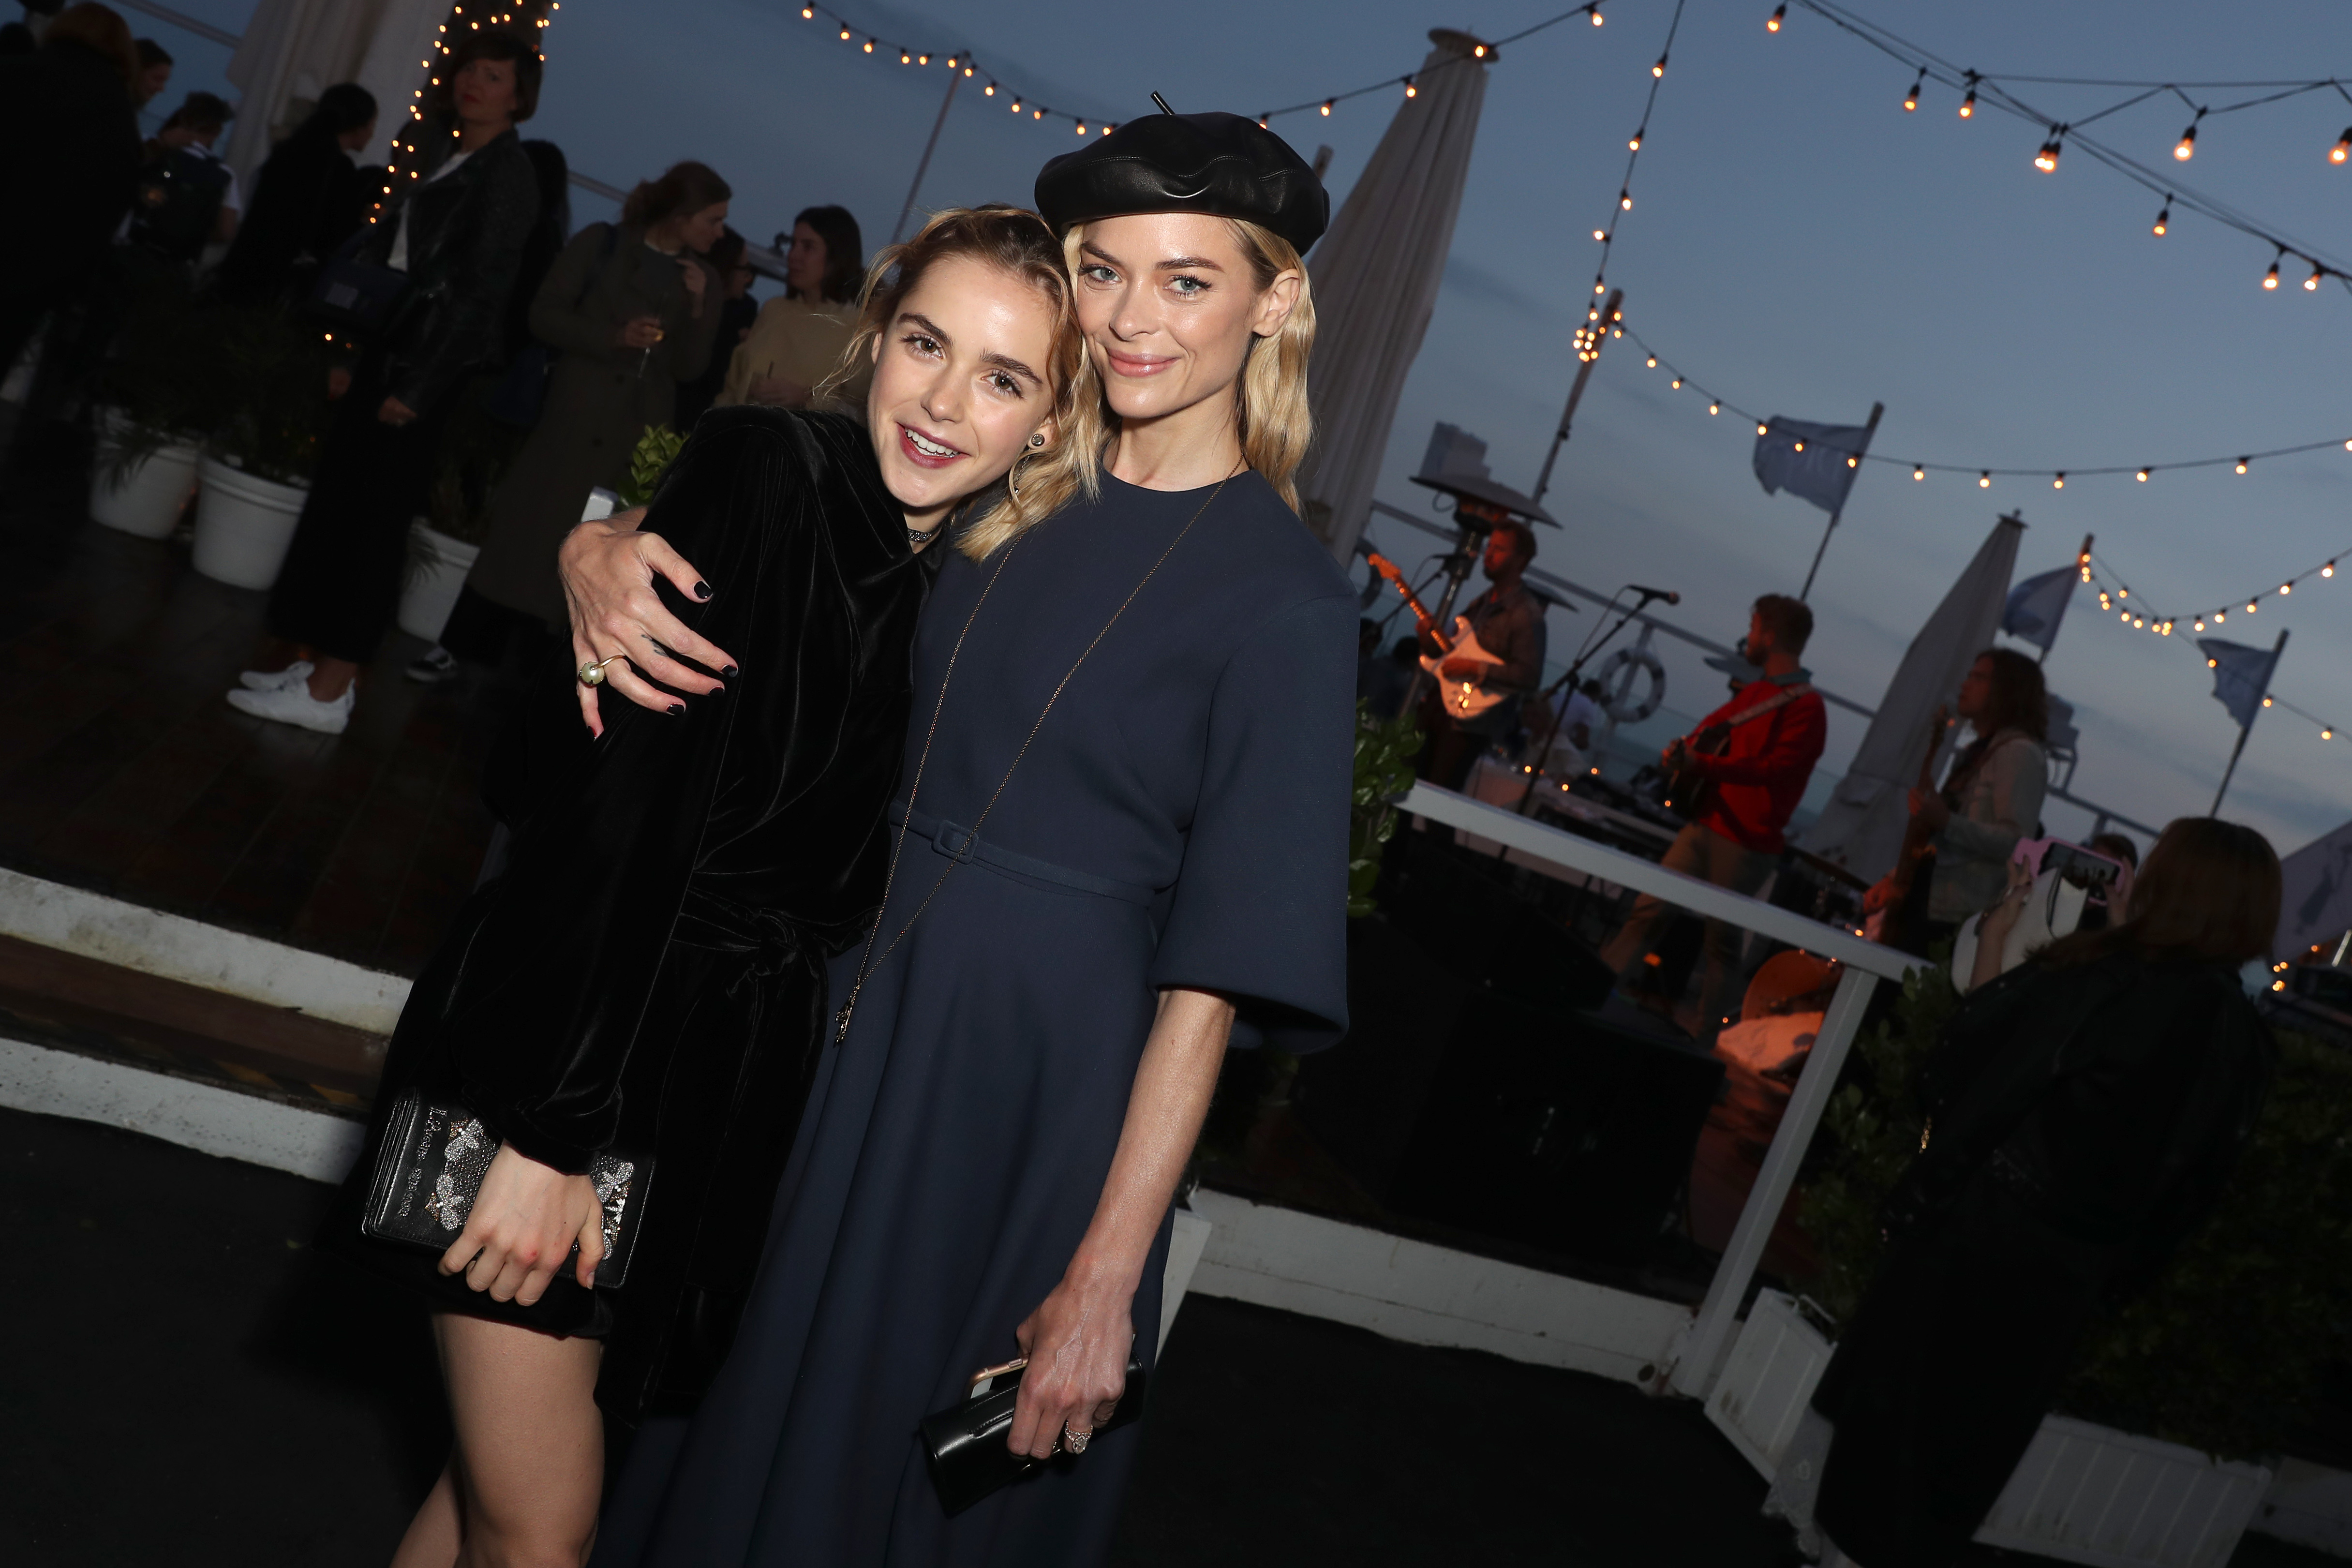 Kiernan Shipka and Jaime King Christian Dior Cruise 2018 Welcome Dinner, Dior Surf Club, Los Angeles, USA - 10 May 2017